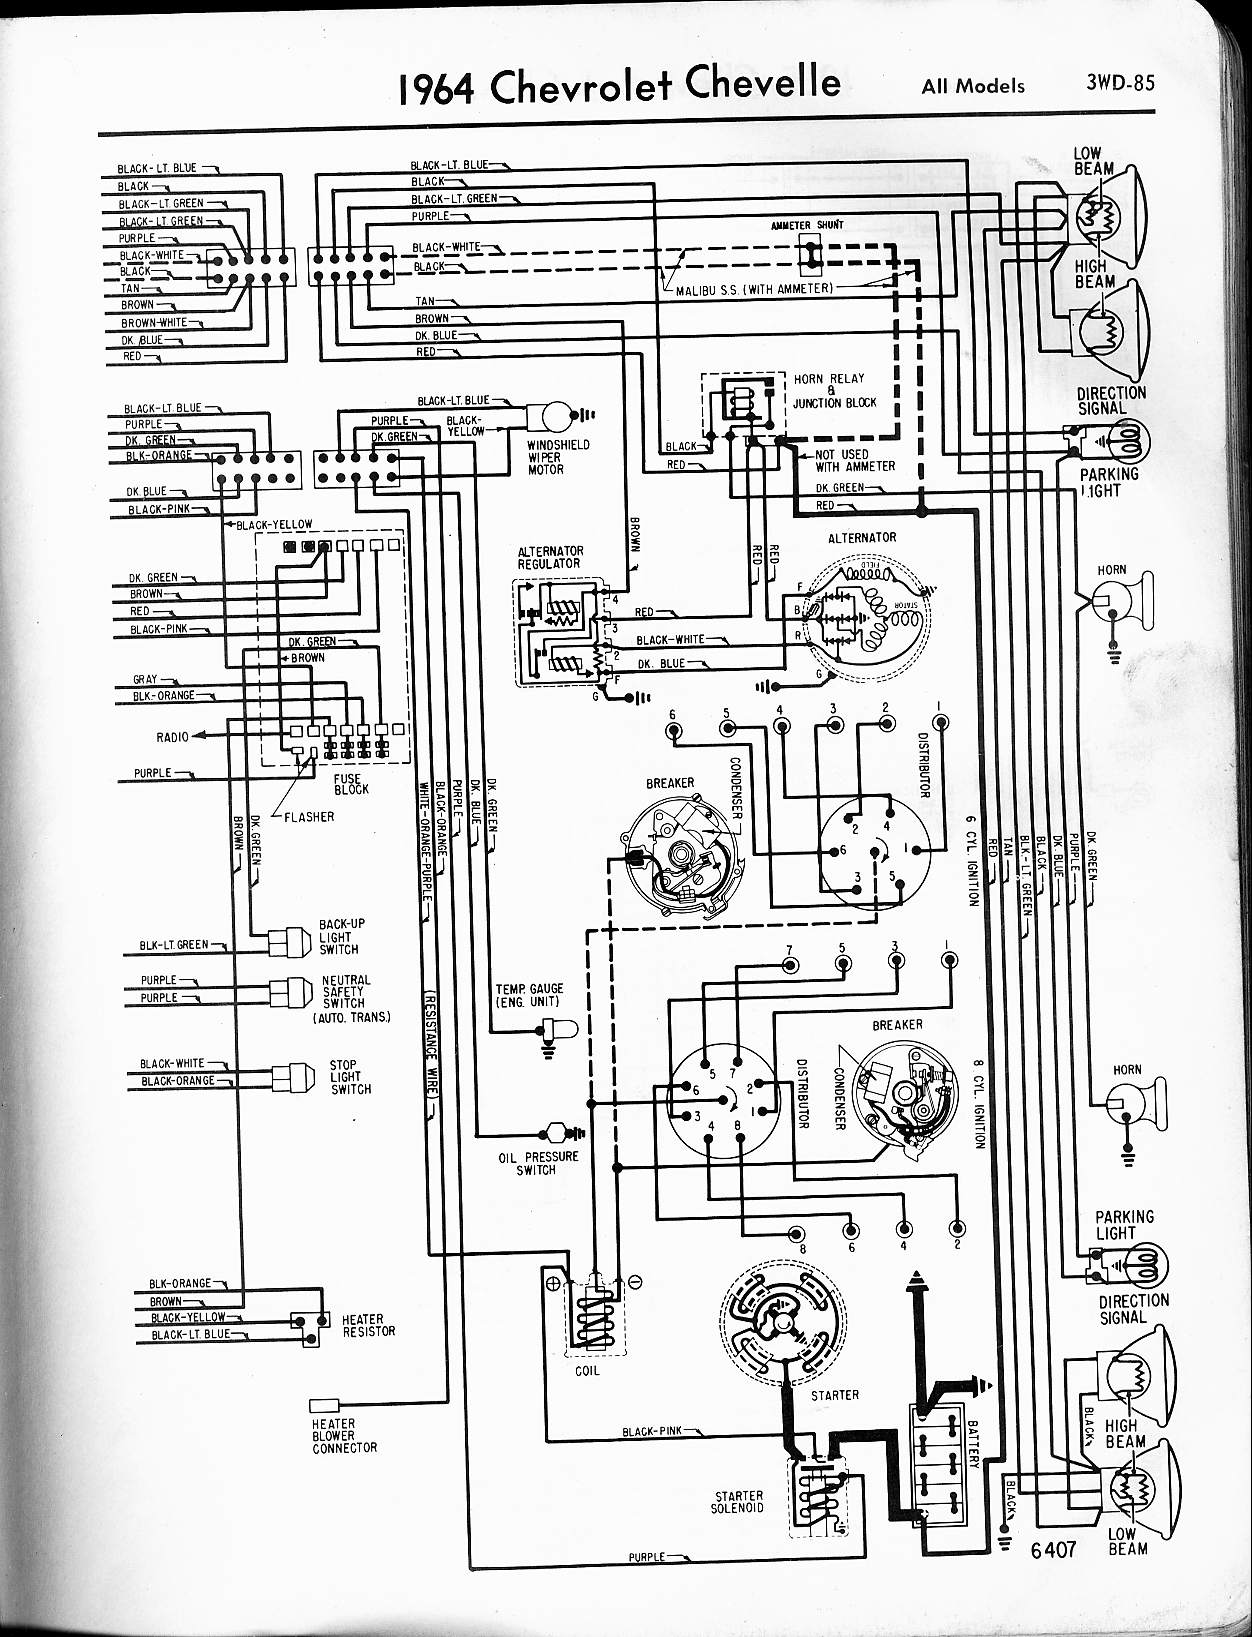 hight resolution of 1964 mustang fuse box diagram wiring library wiring diagram 1964 impala 65 mustang rear seat belt location diagram